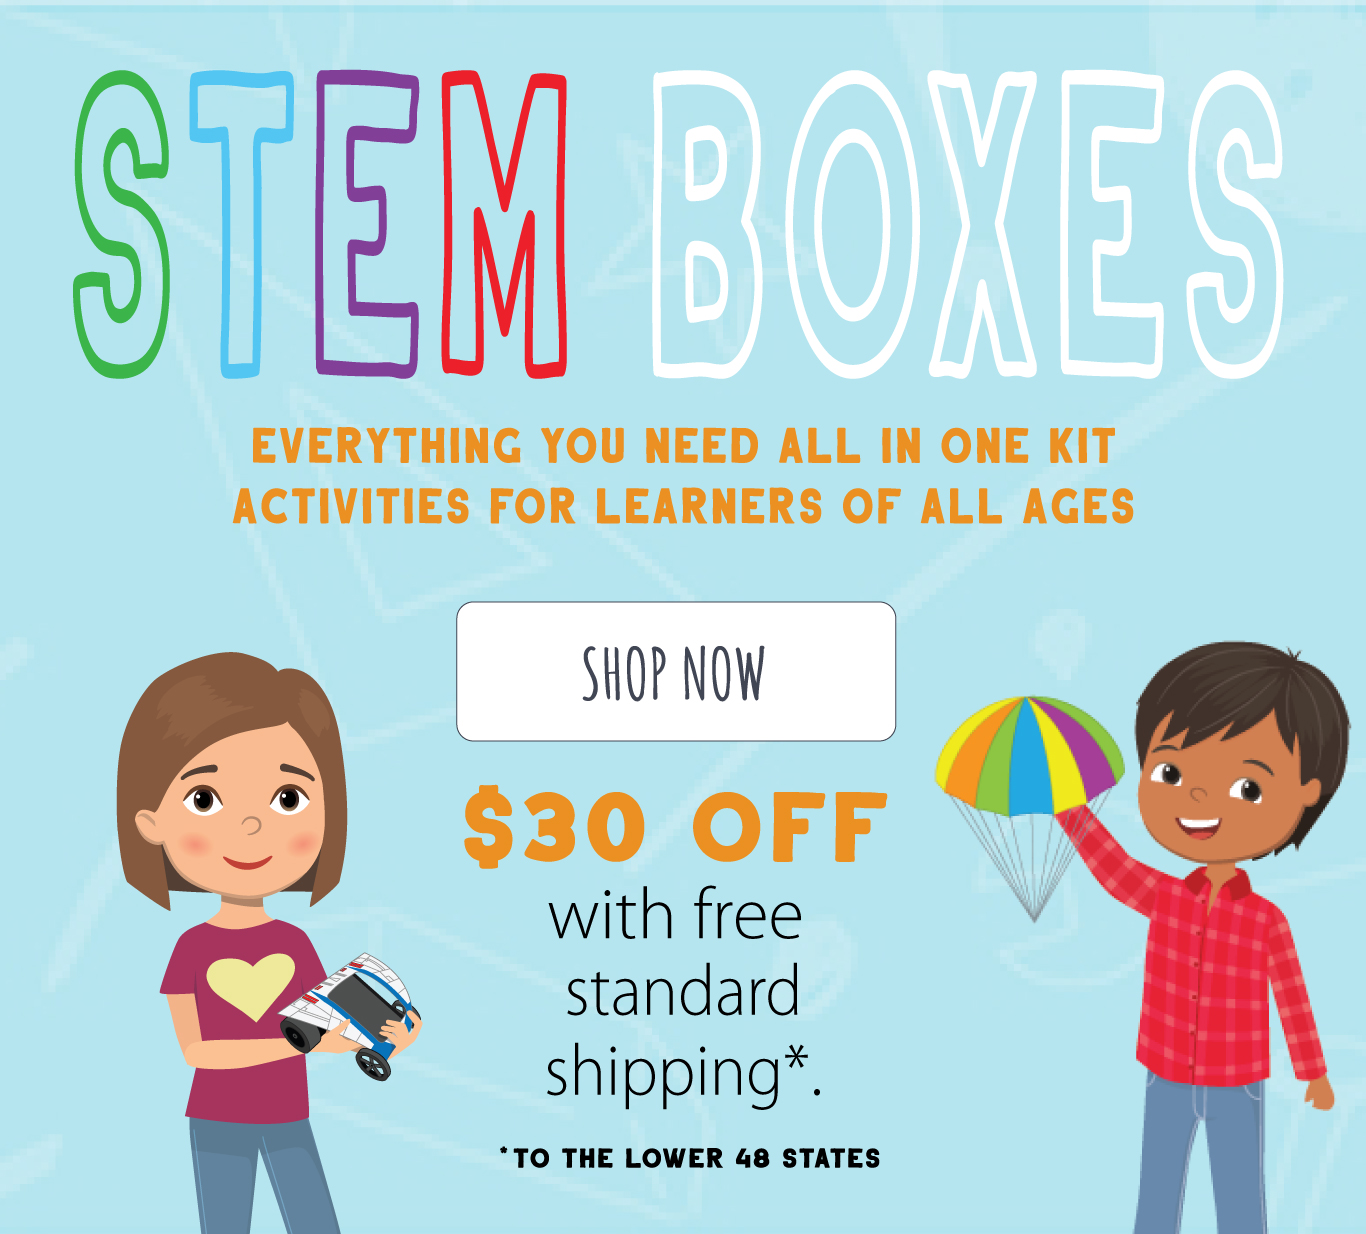 STEM BOXES – Everything you need all in one kit • Activities for learners of all ages – $30 off with free standard shipping.